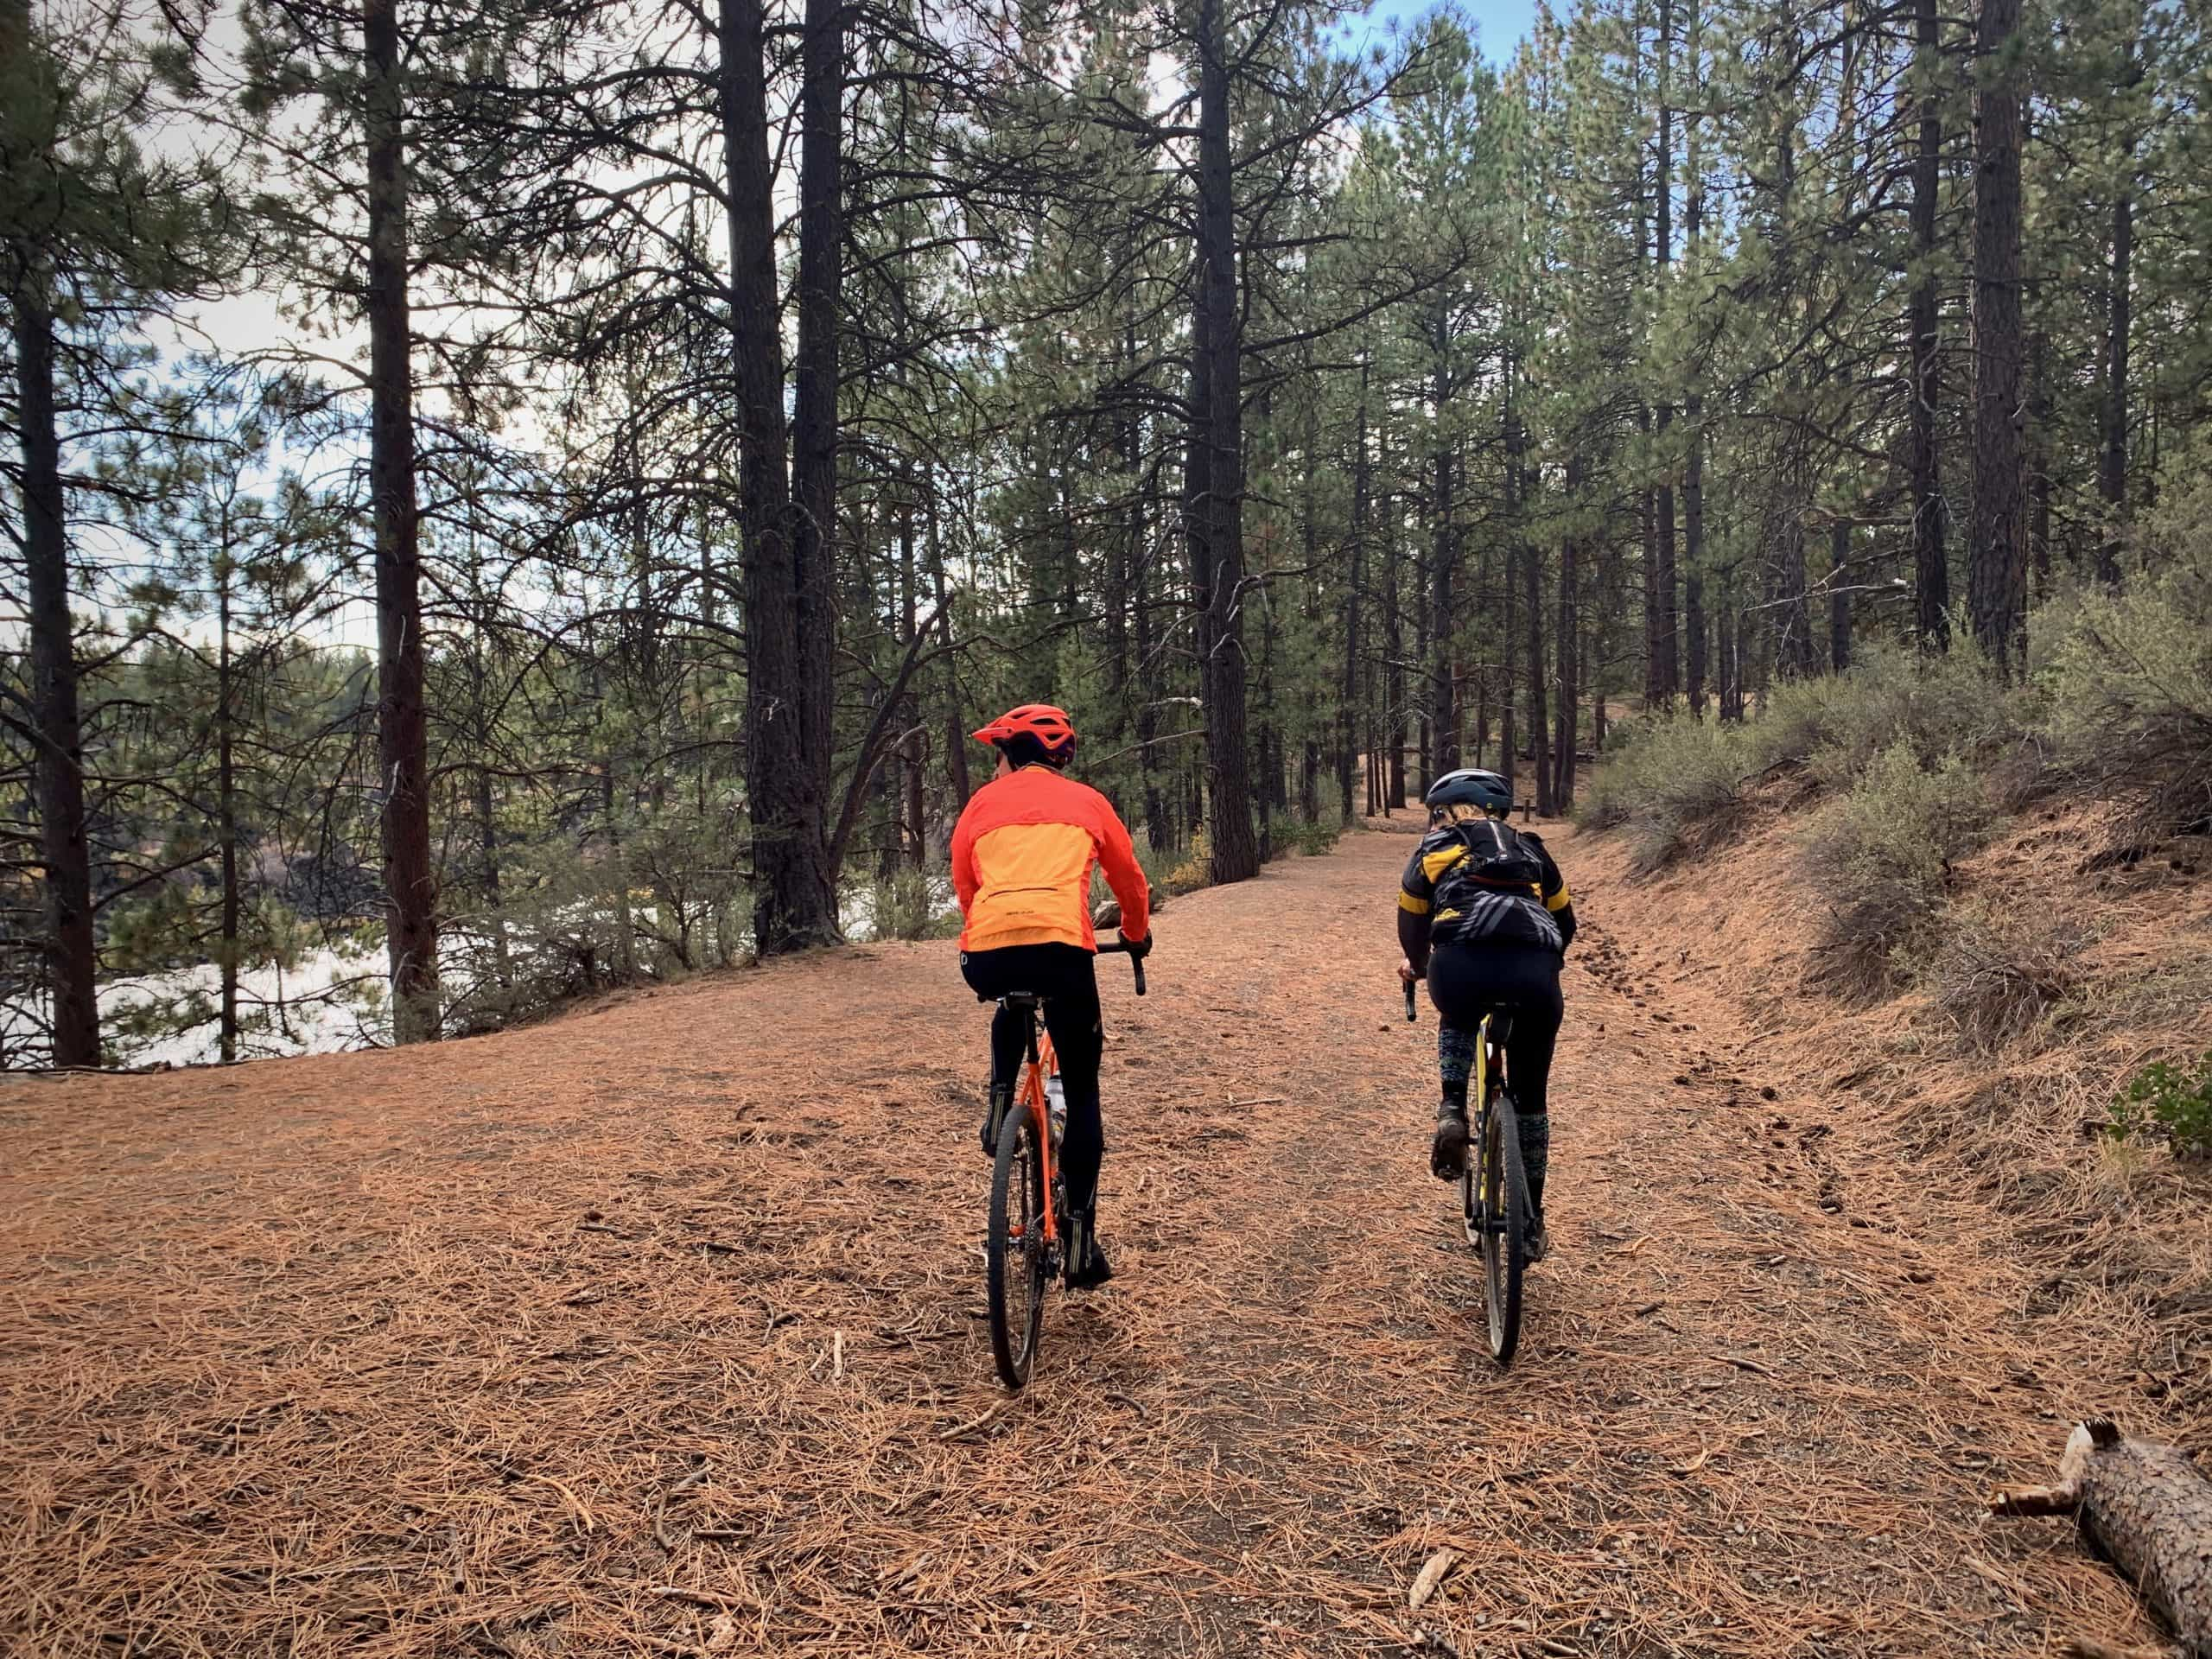 Two women cyclists riding double track on gravel bikes near the Deschutes River Trail near Bend, Oregon.